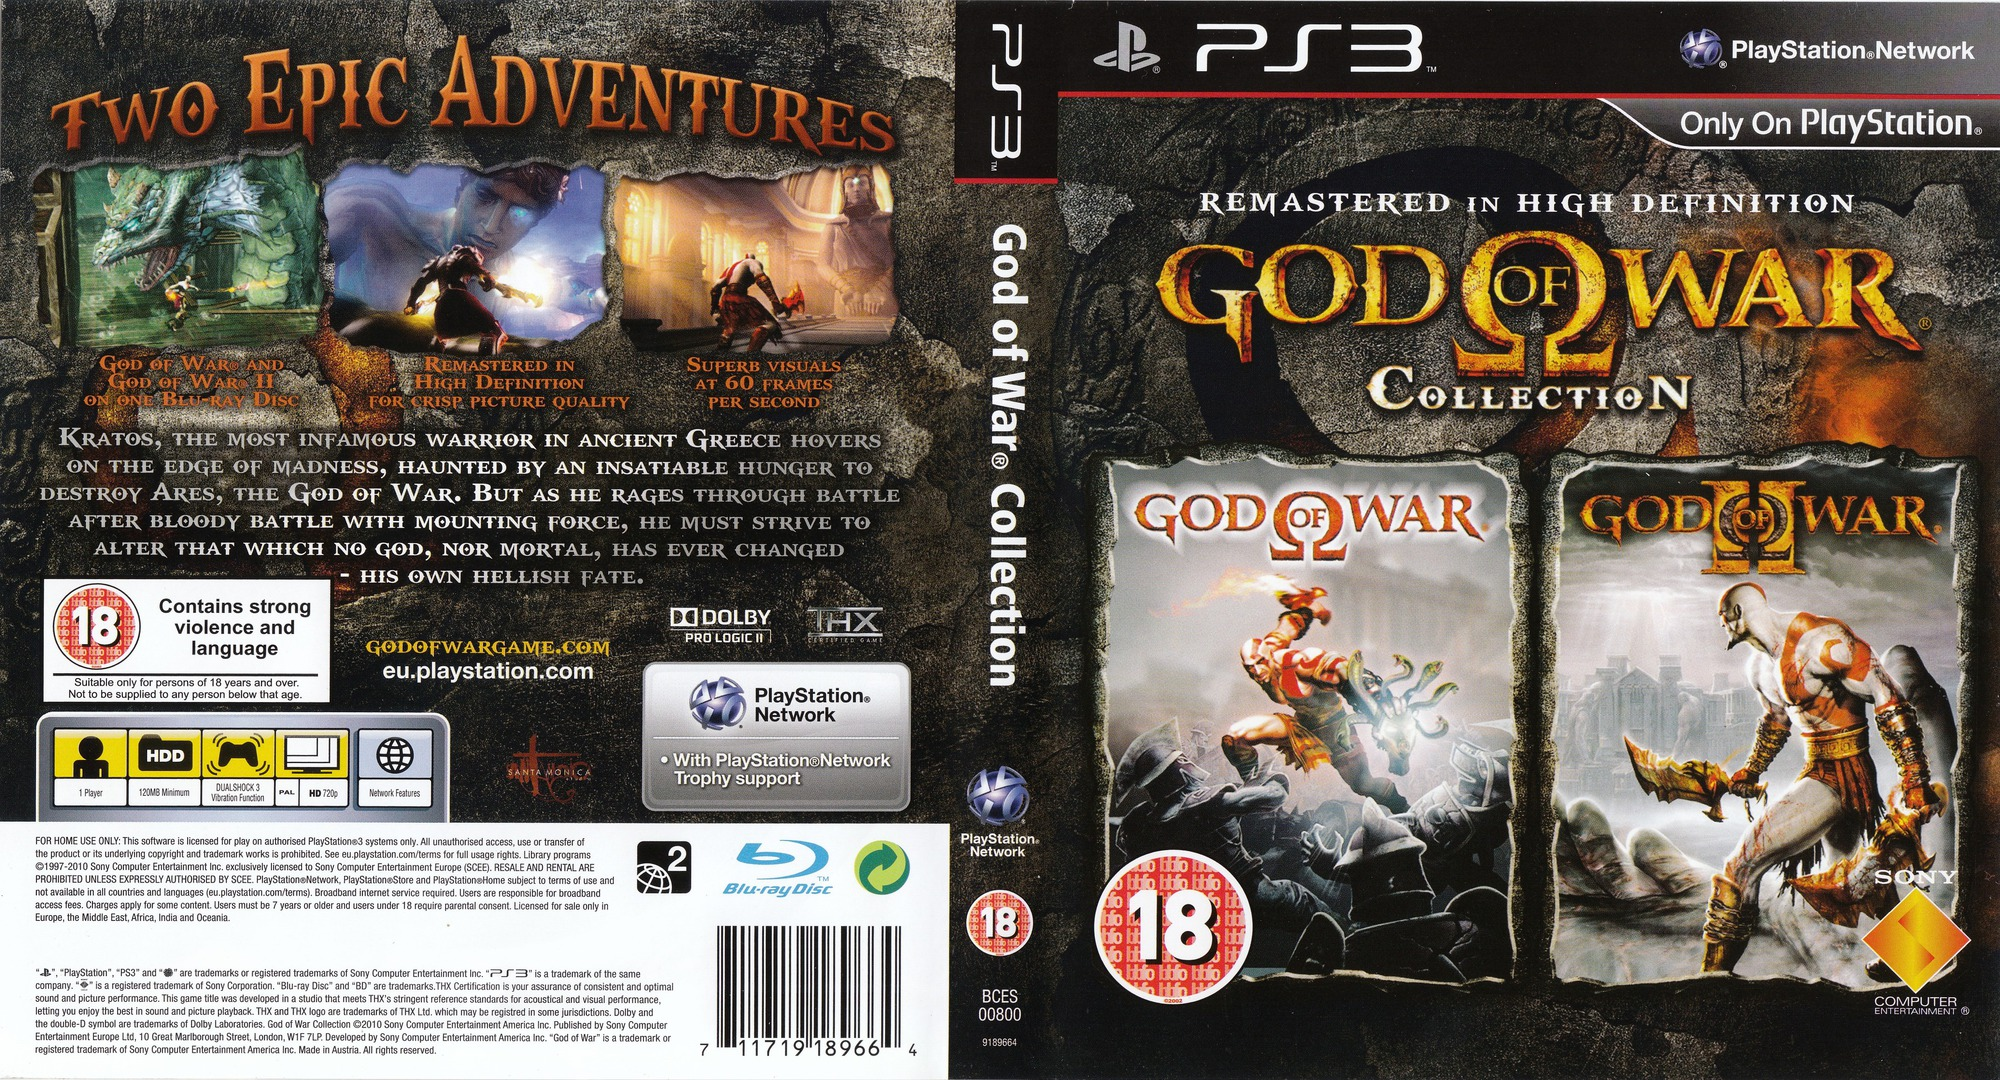 God of War Collection PS3 coverfullHQ (BCES00800)